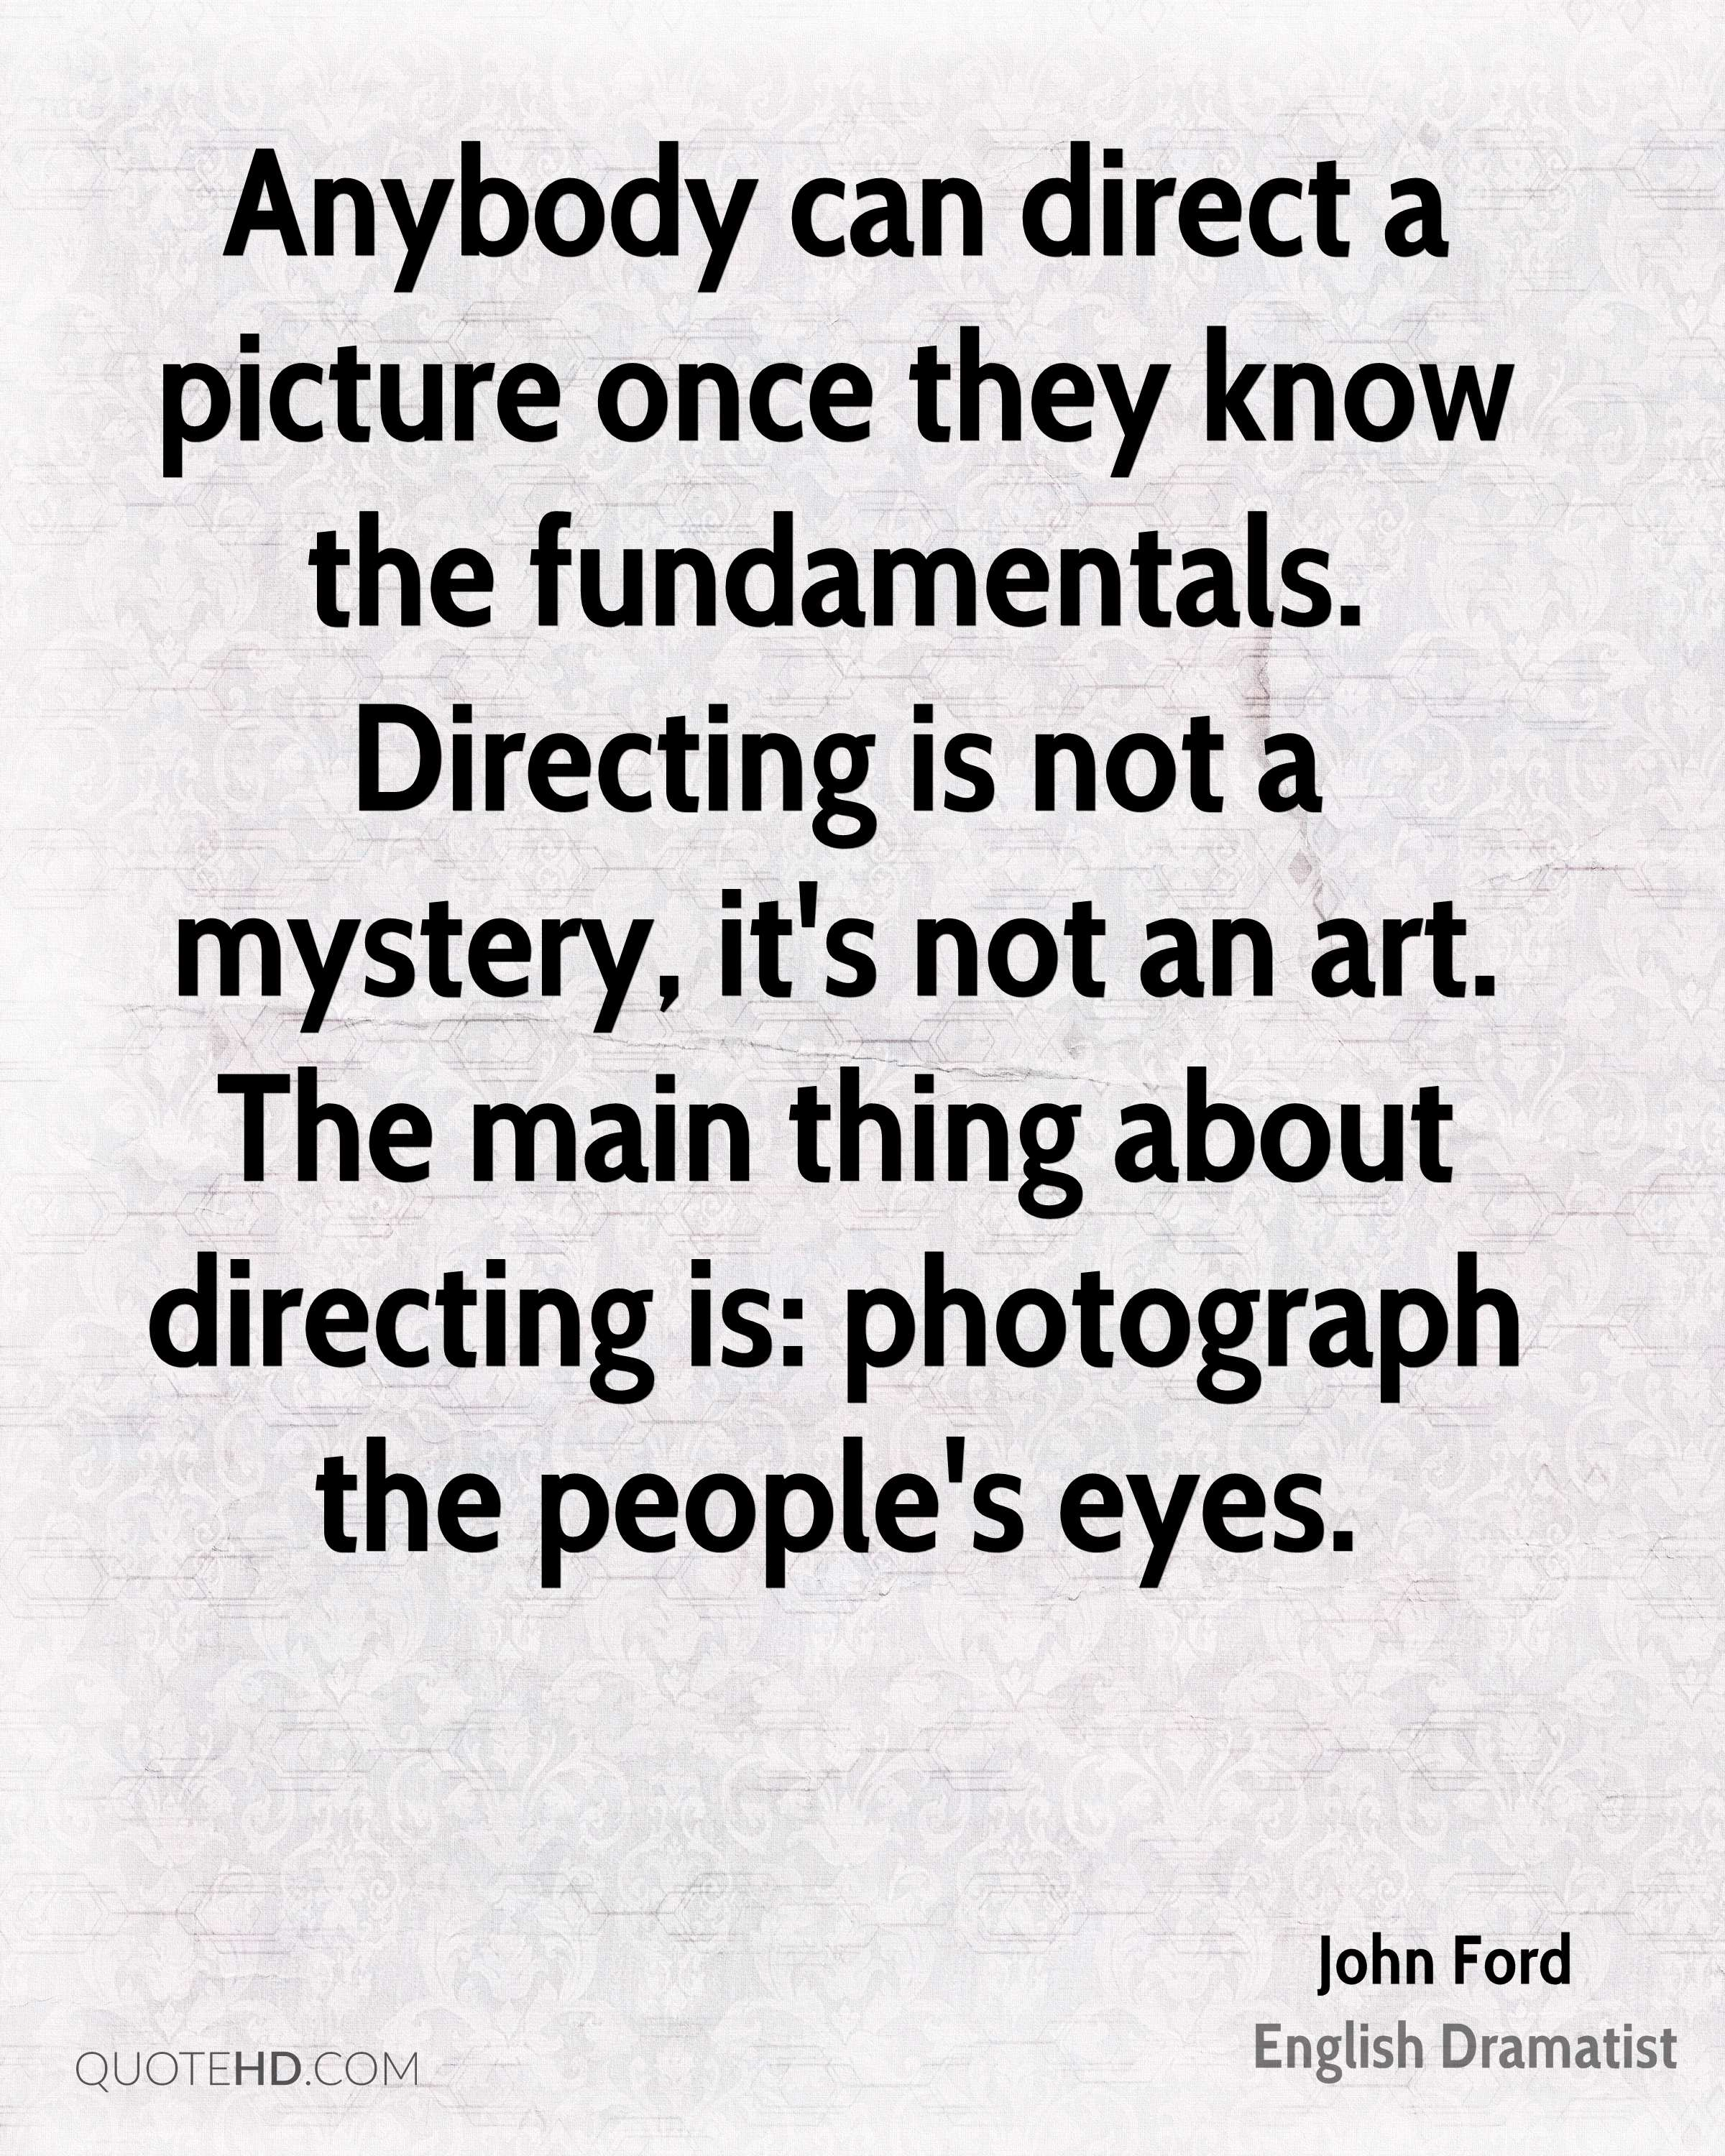 Anybody can direct a picture once they know the fundamentals. Directing is not a mystery, it's not an art. The main thing about directing is: photograph the people's eyes.